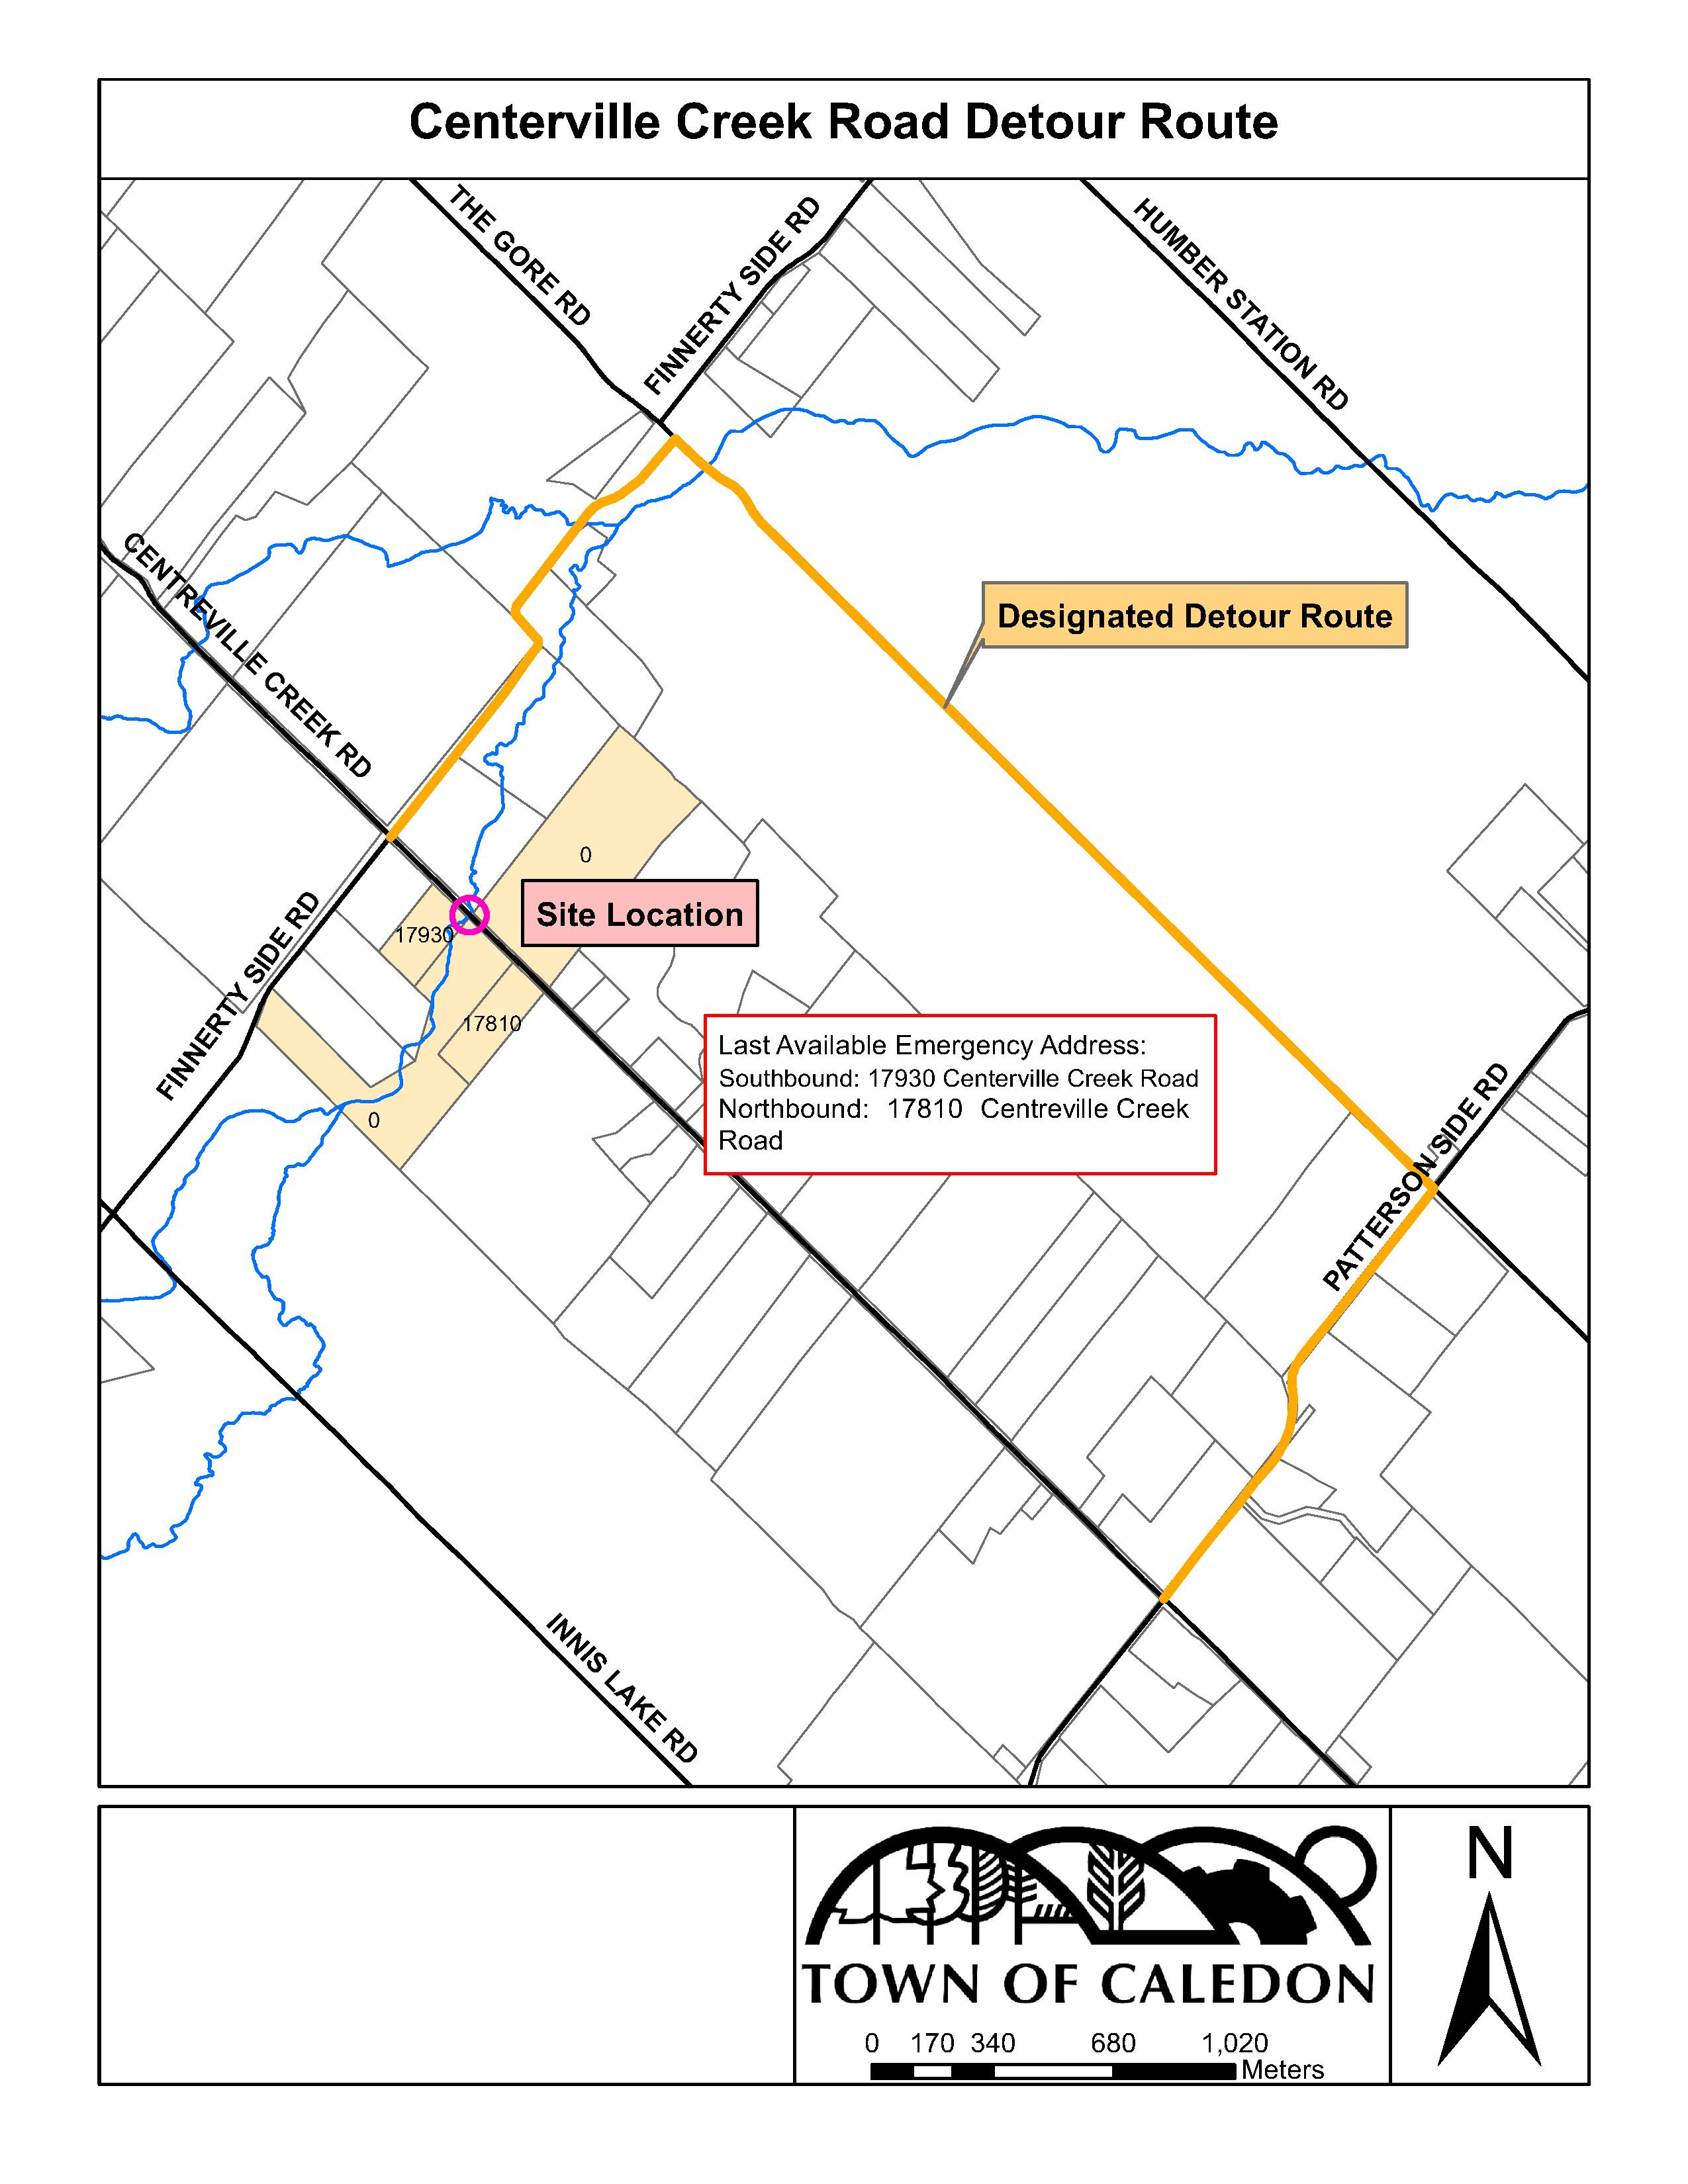 Centreville Creek Road Detour